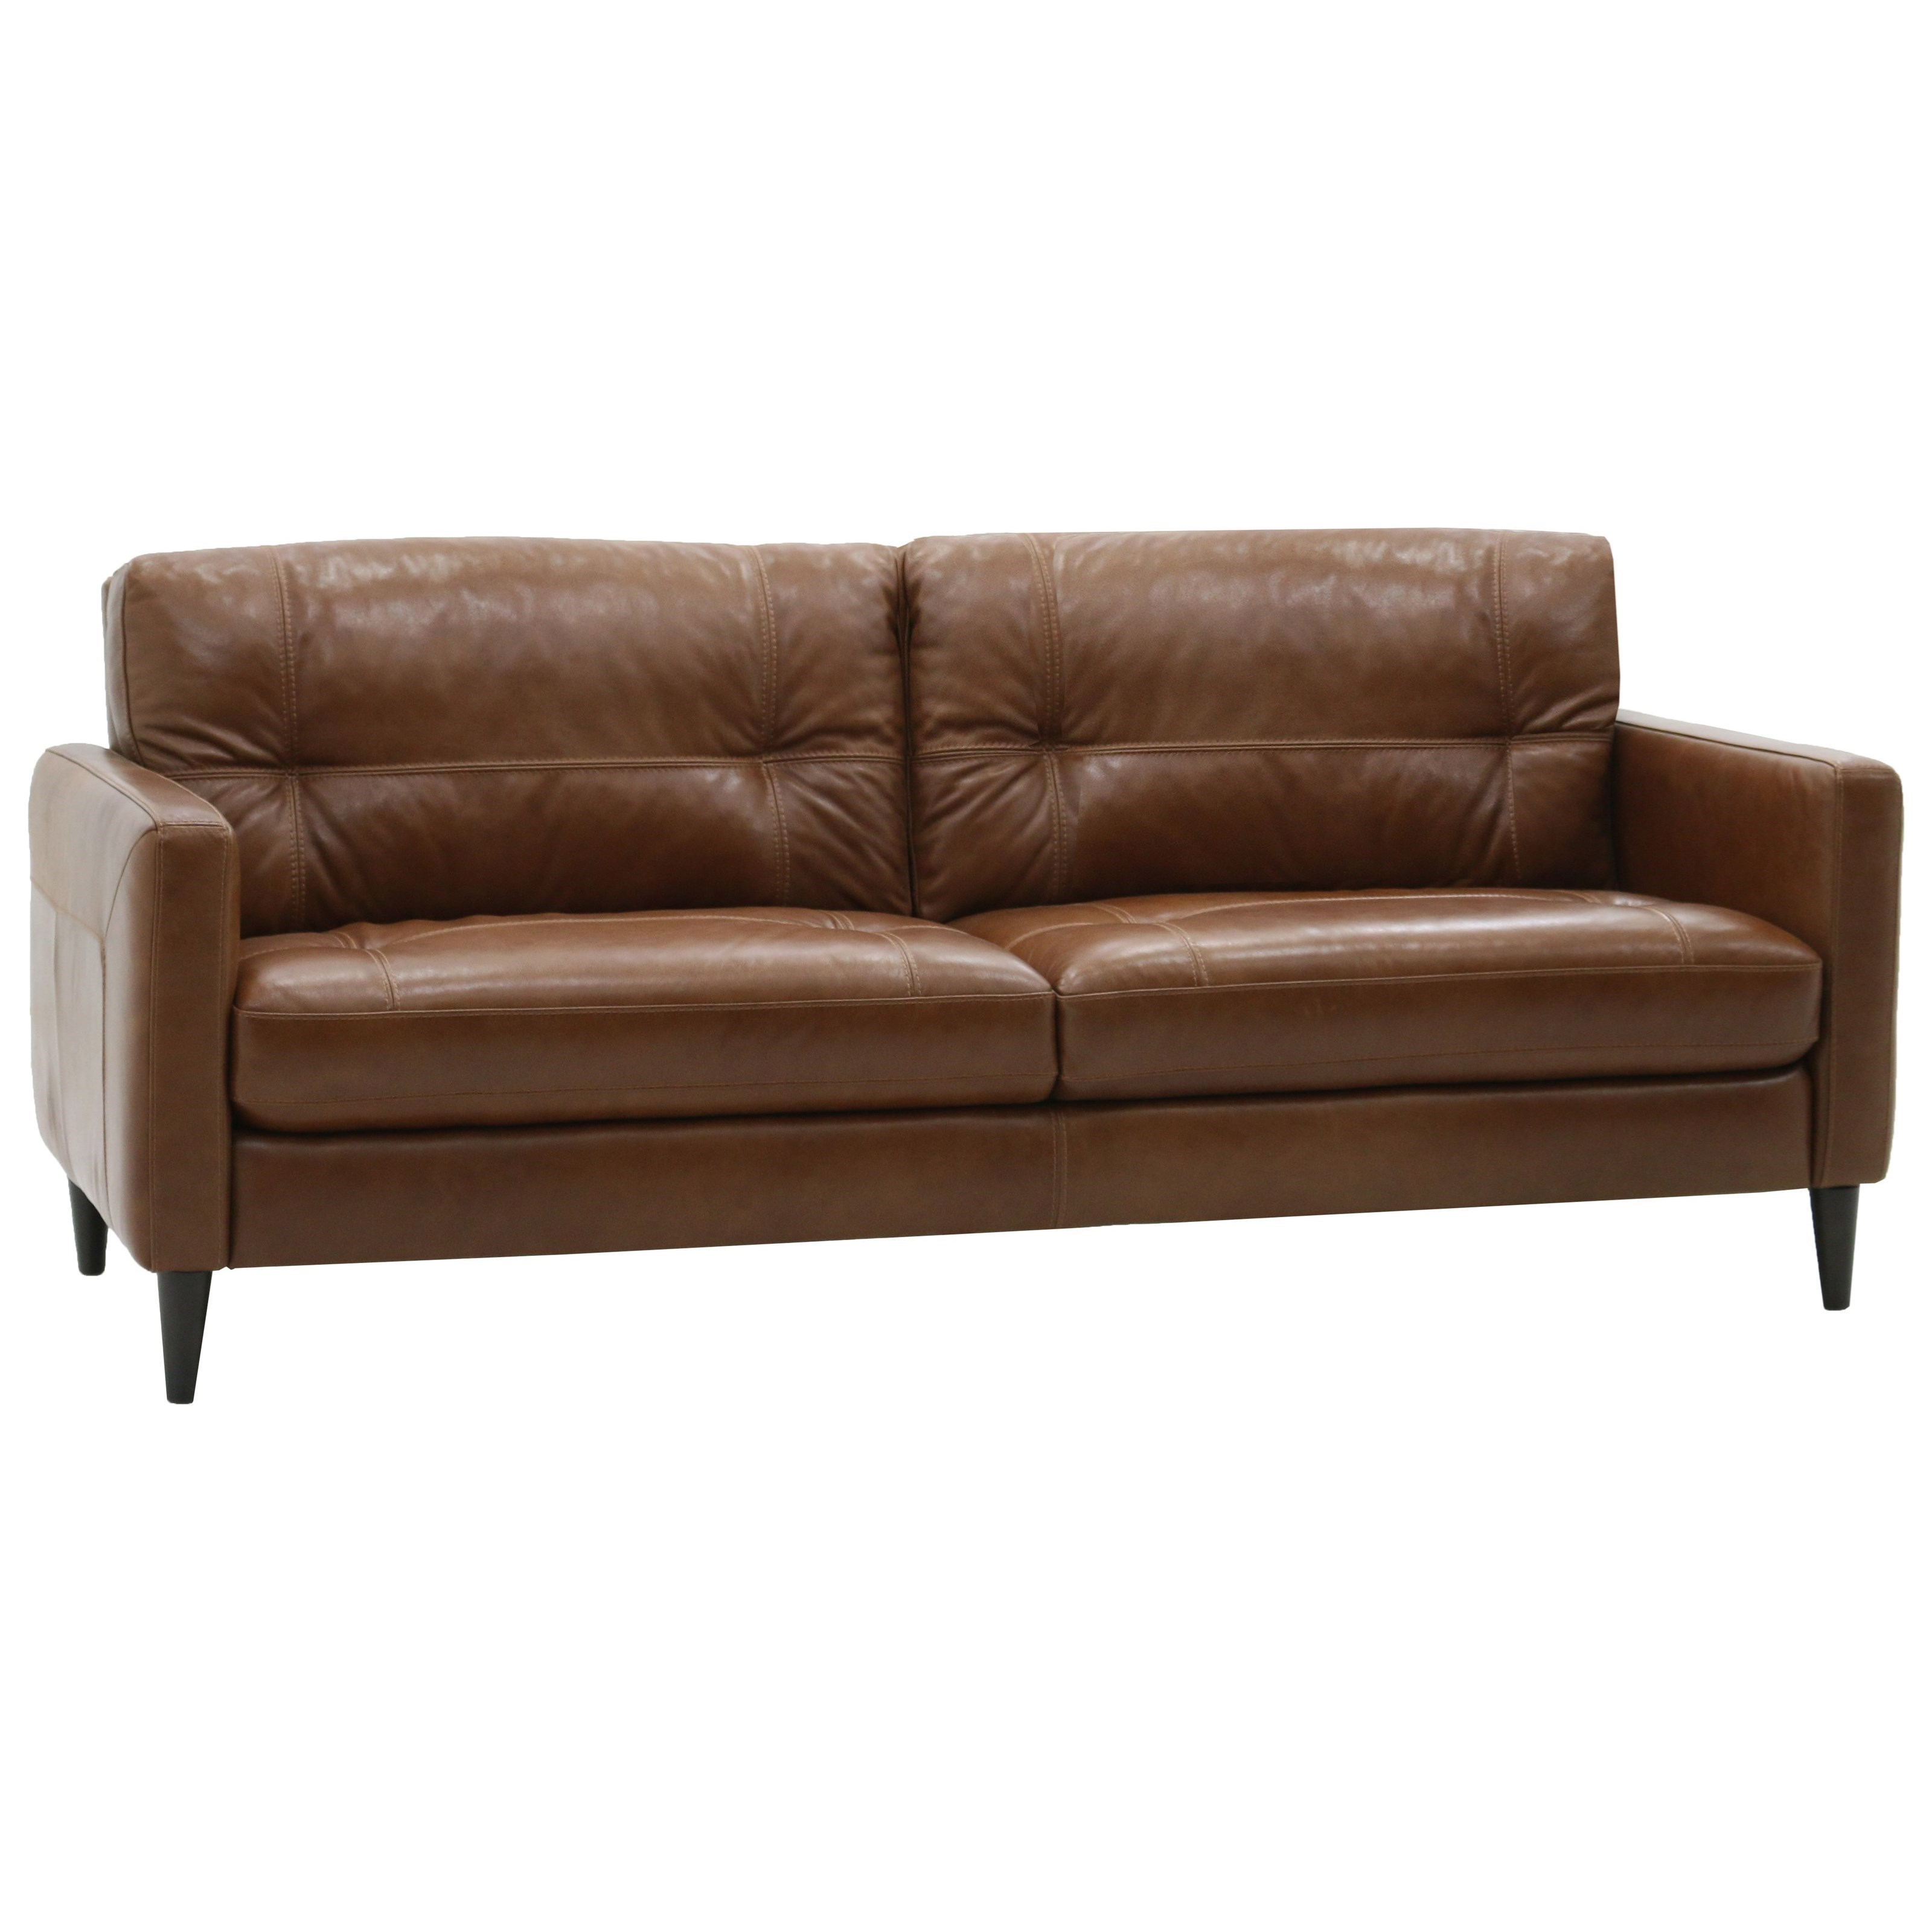 Merveilleux Belfort Select Gavin Mid Century Modern Sofa With Track Arms